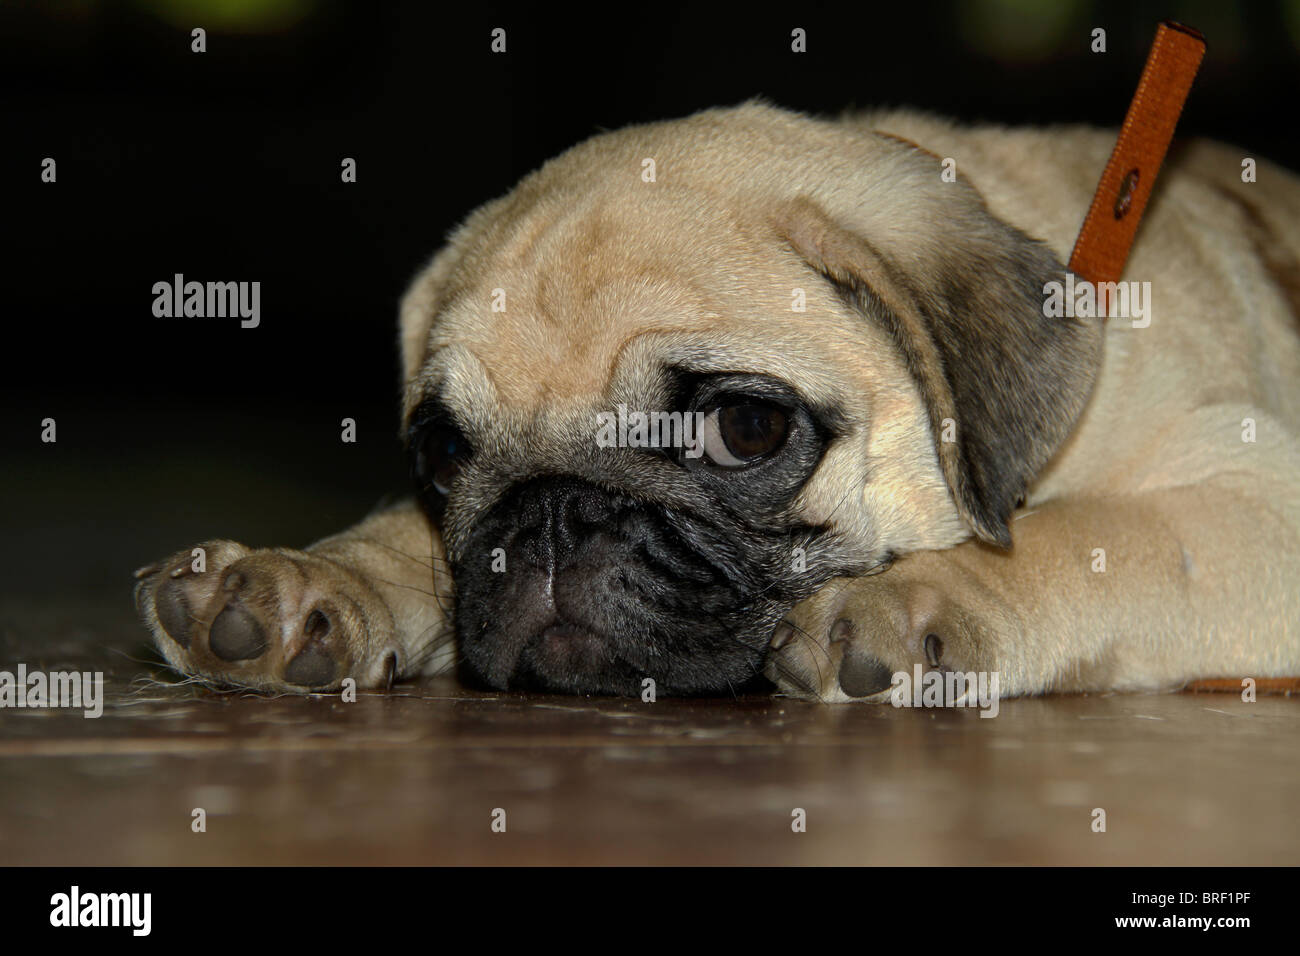 Pug at the 23rd All India All Breeds Open Dog Show held at Chandra Sekharan Nair Stadium, Thiruvananthapuram, Kerala, - Stock Image